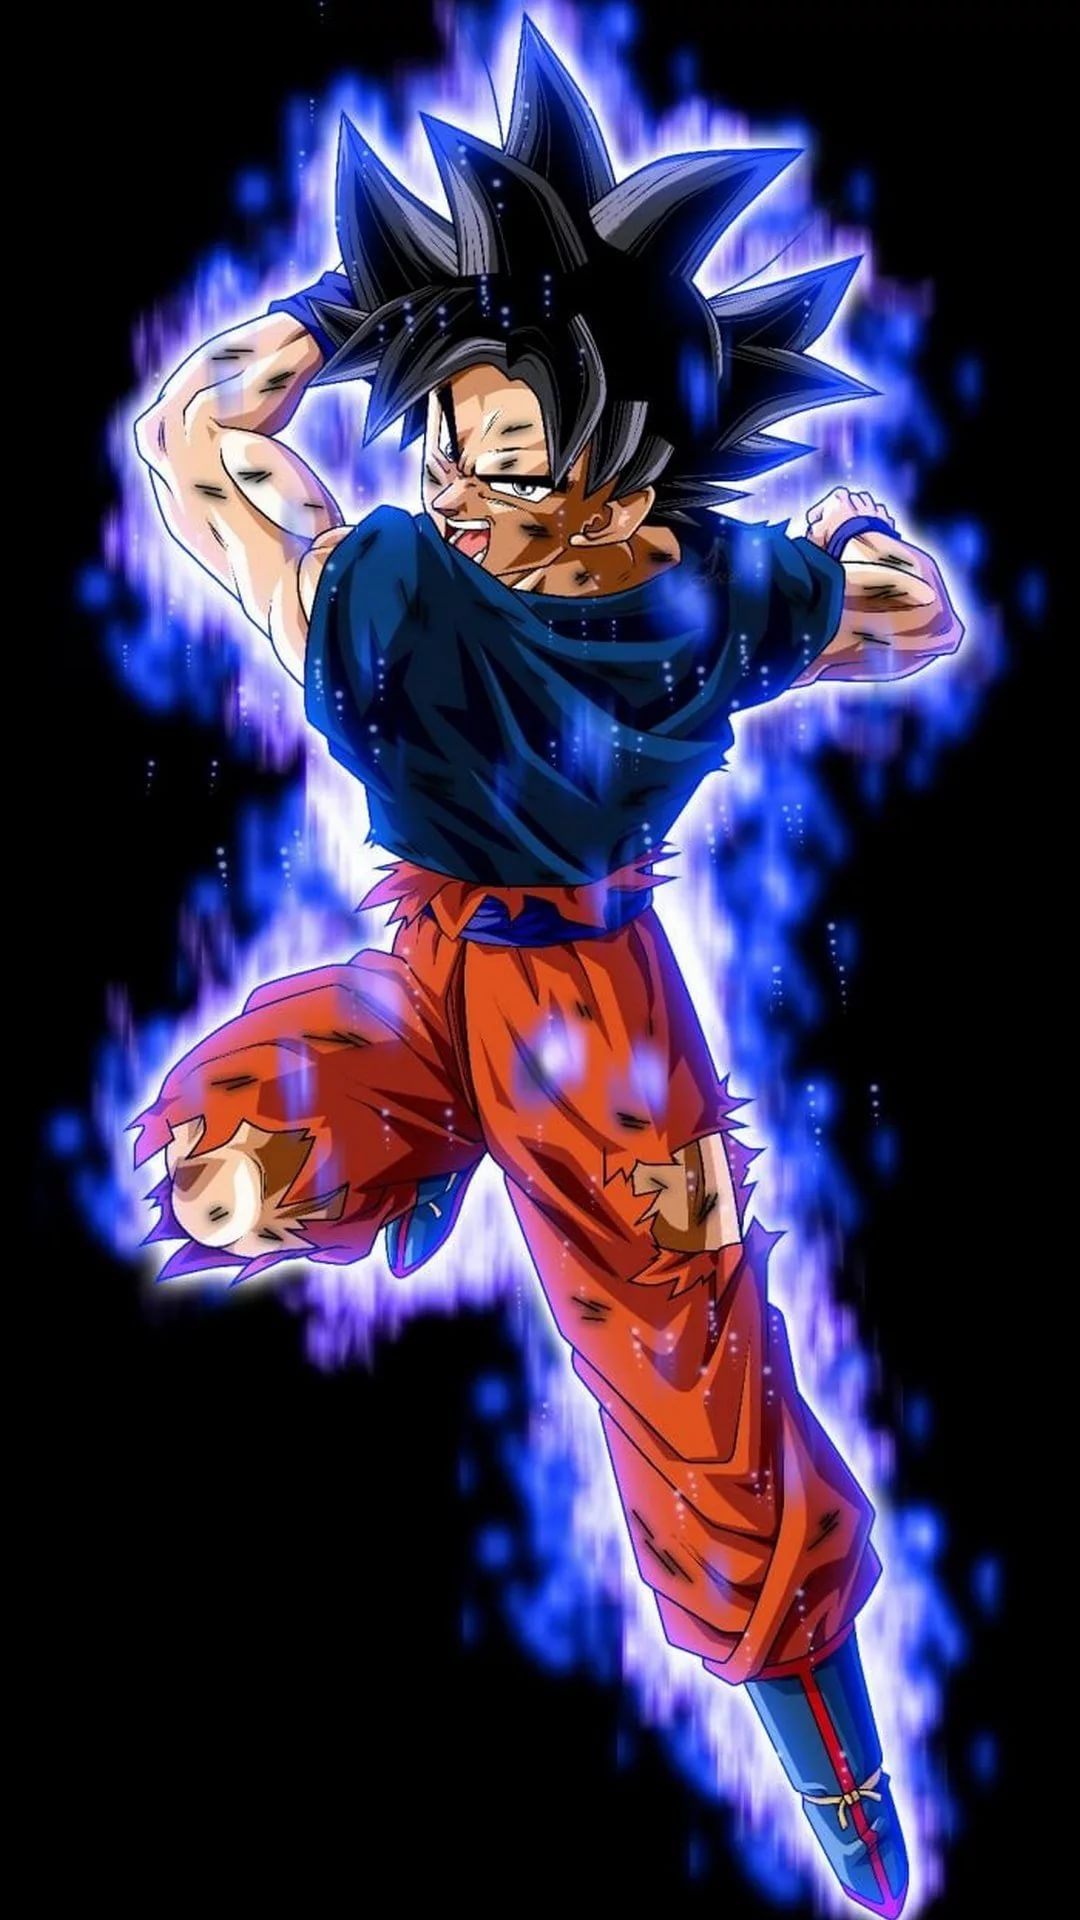 Gohan Apple iPhone wallpaper